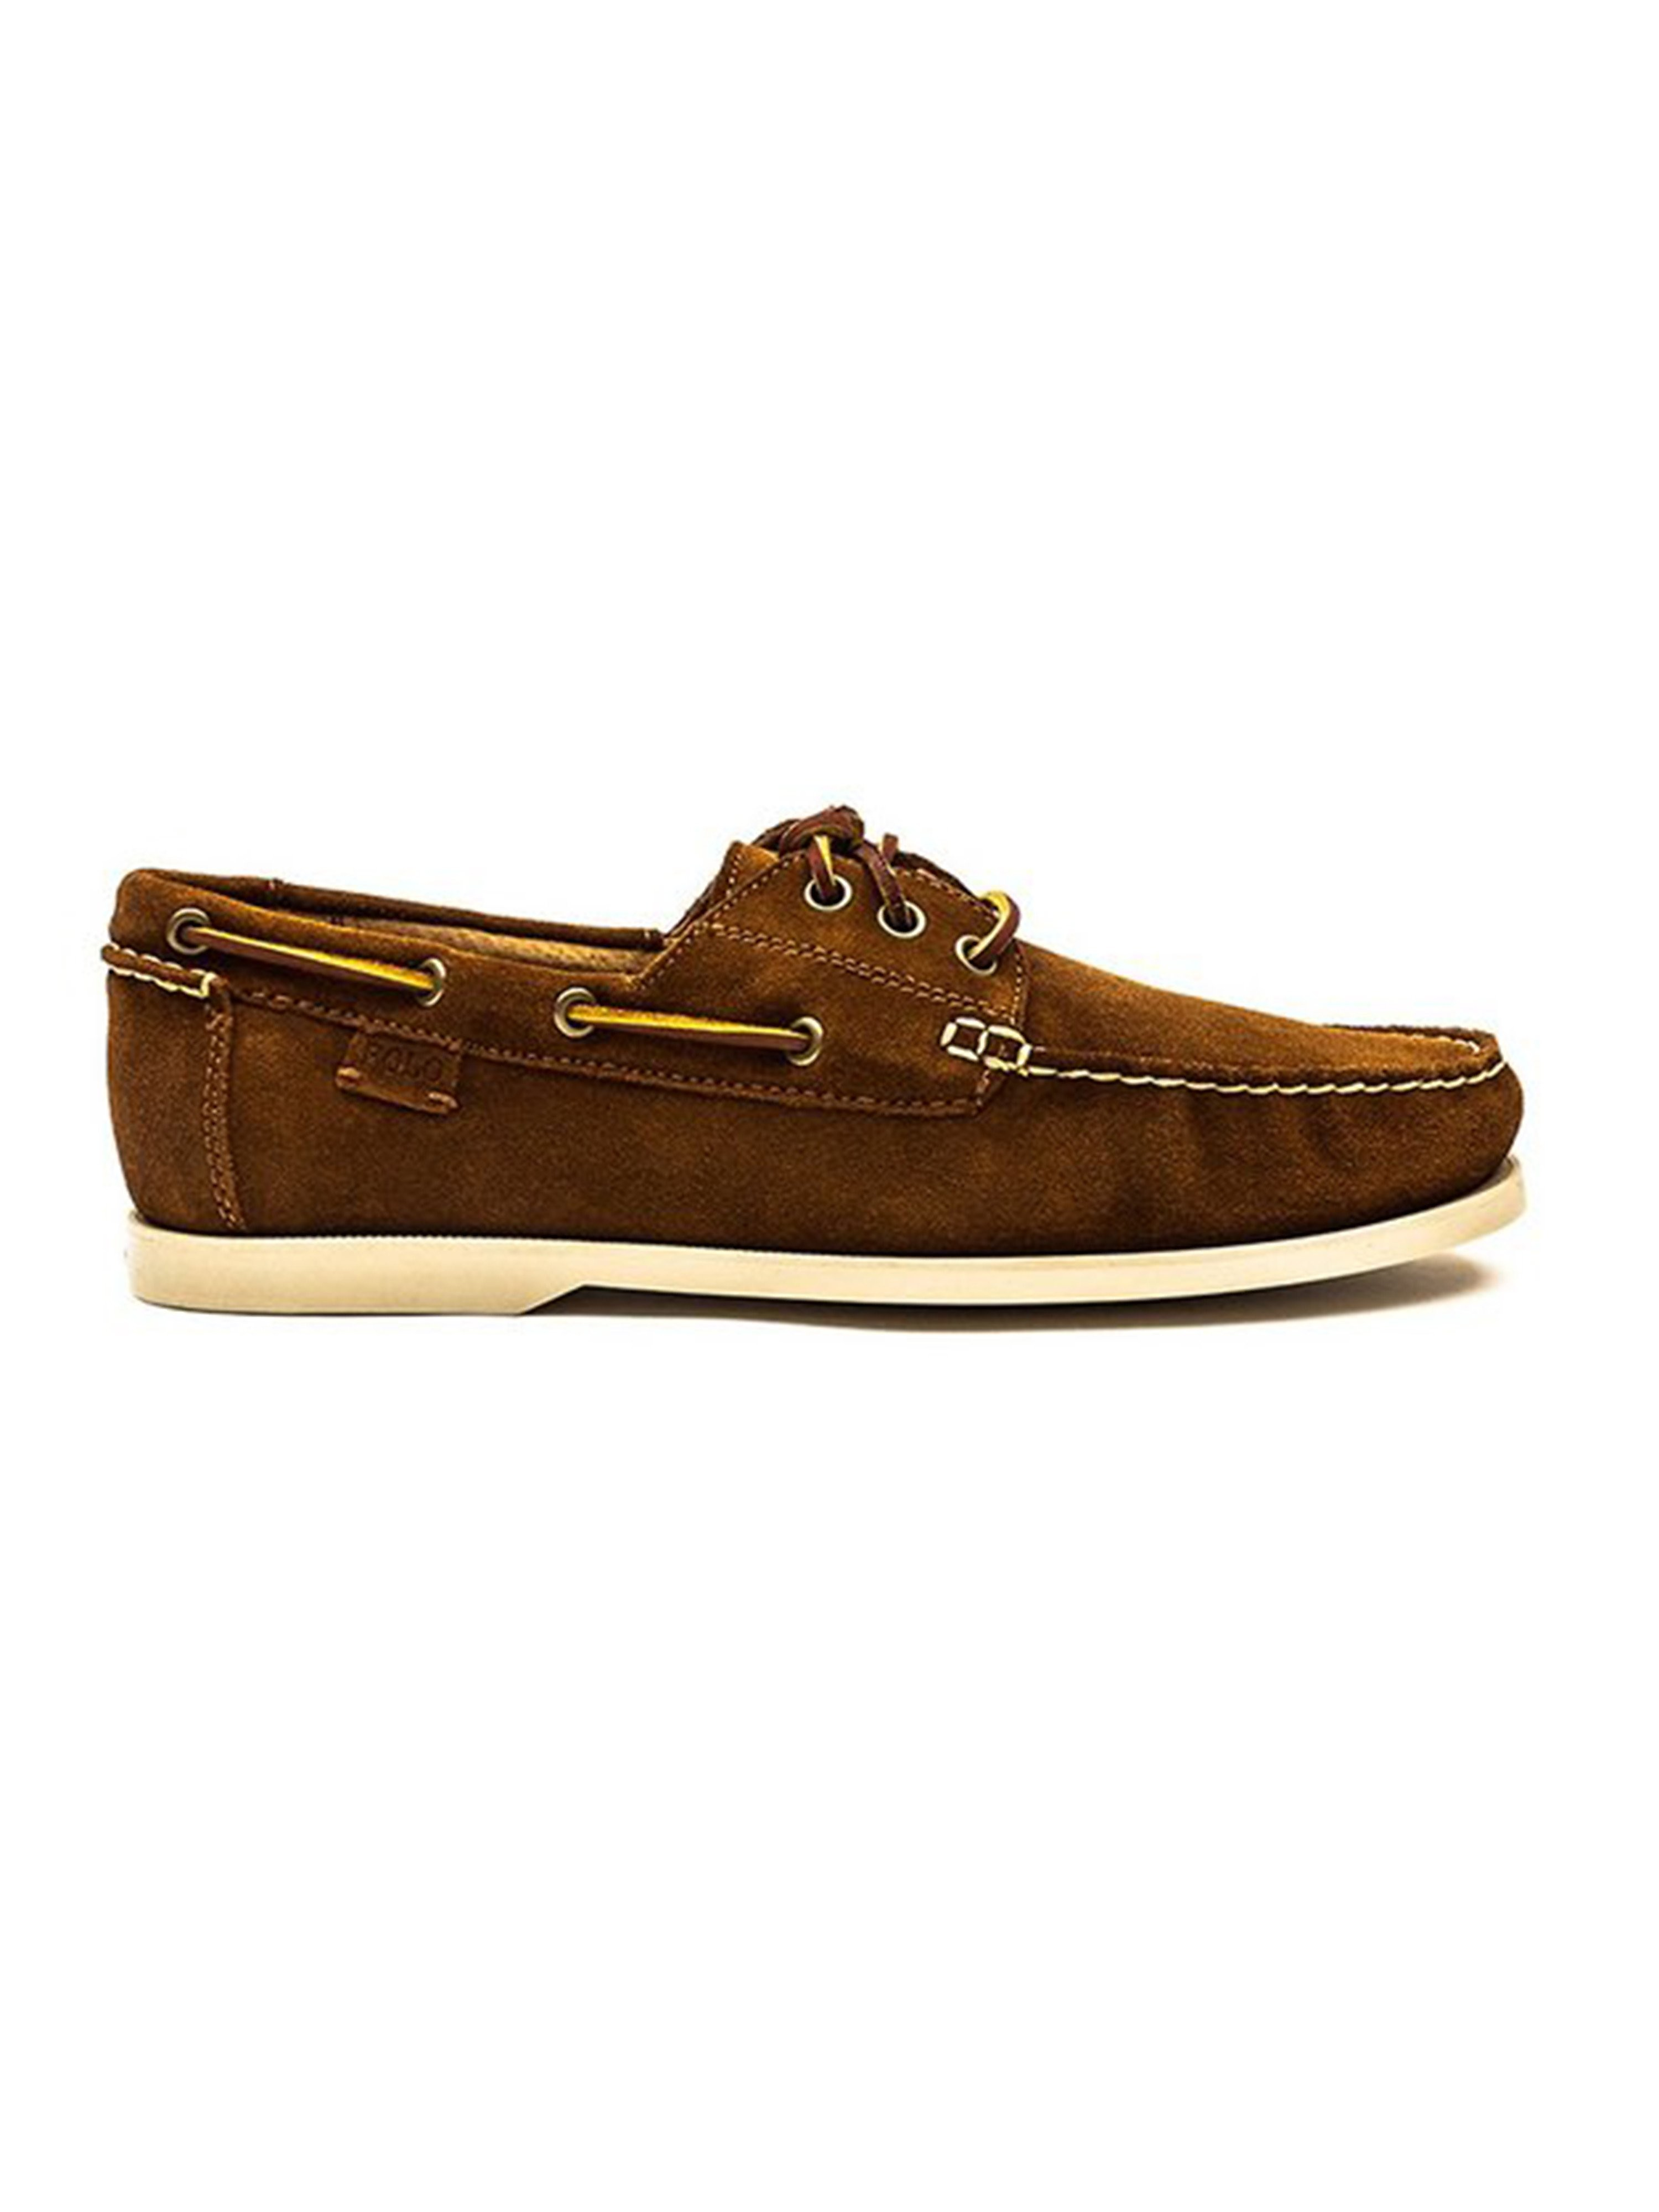 Polo Ralph Lauren Mens Bienne II Suede Shoes - New Snuff Brown